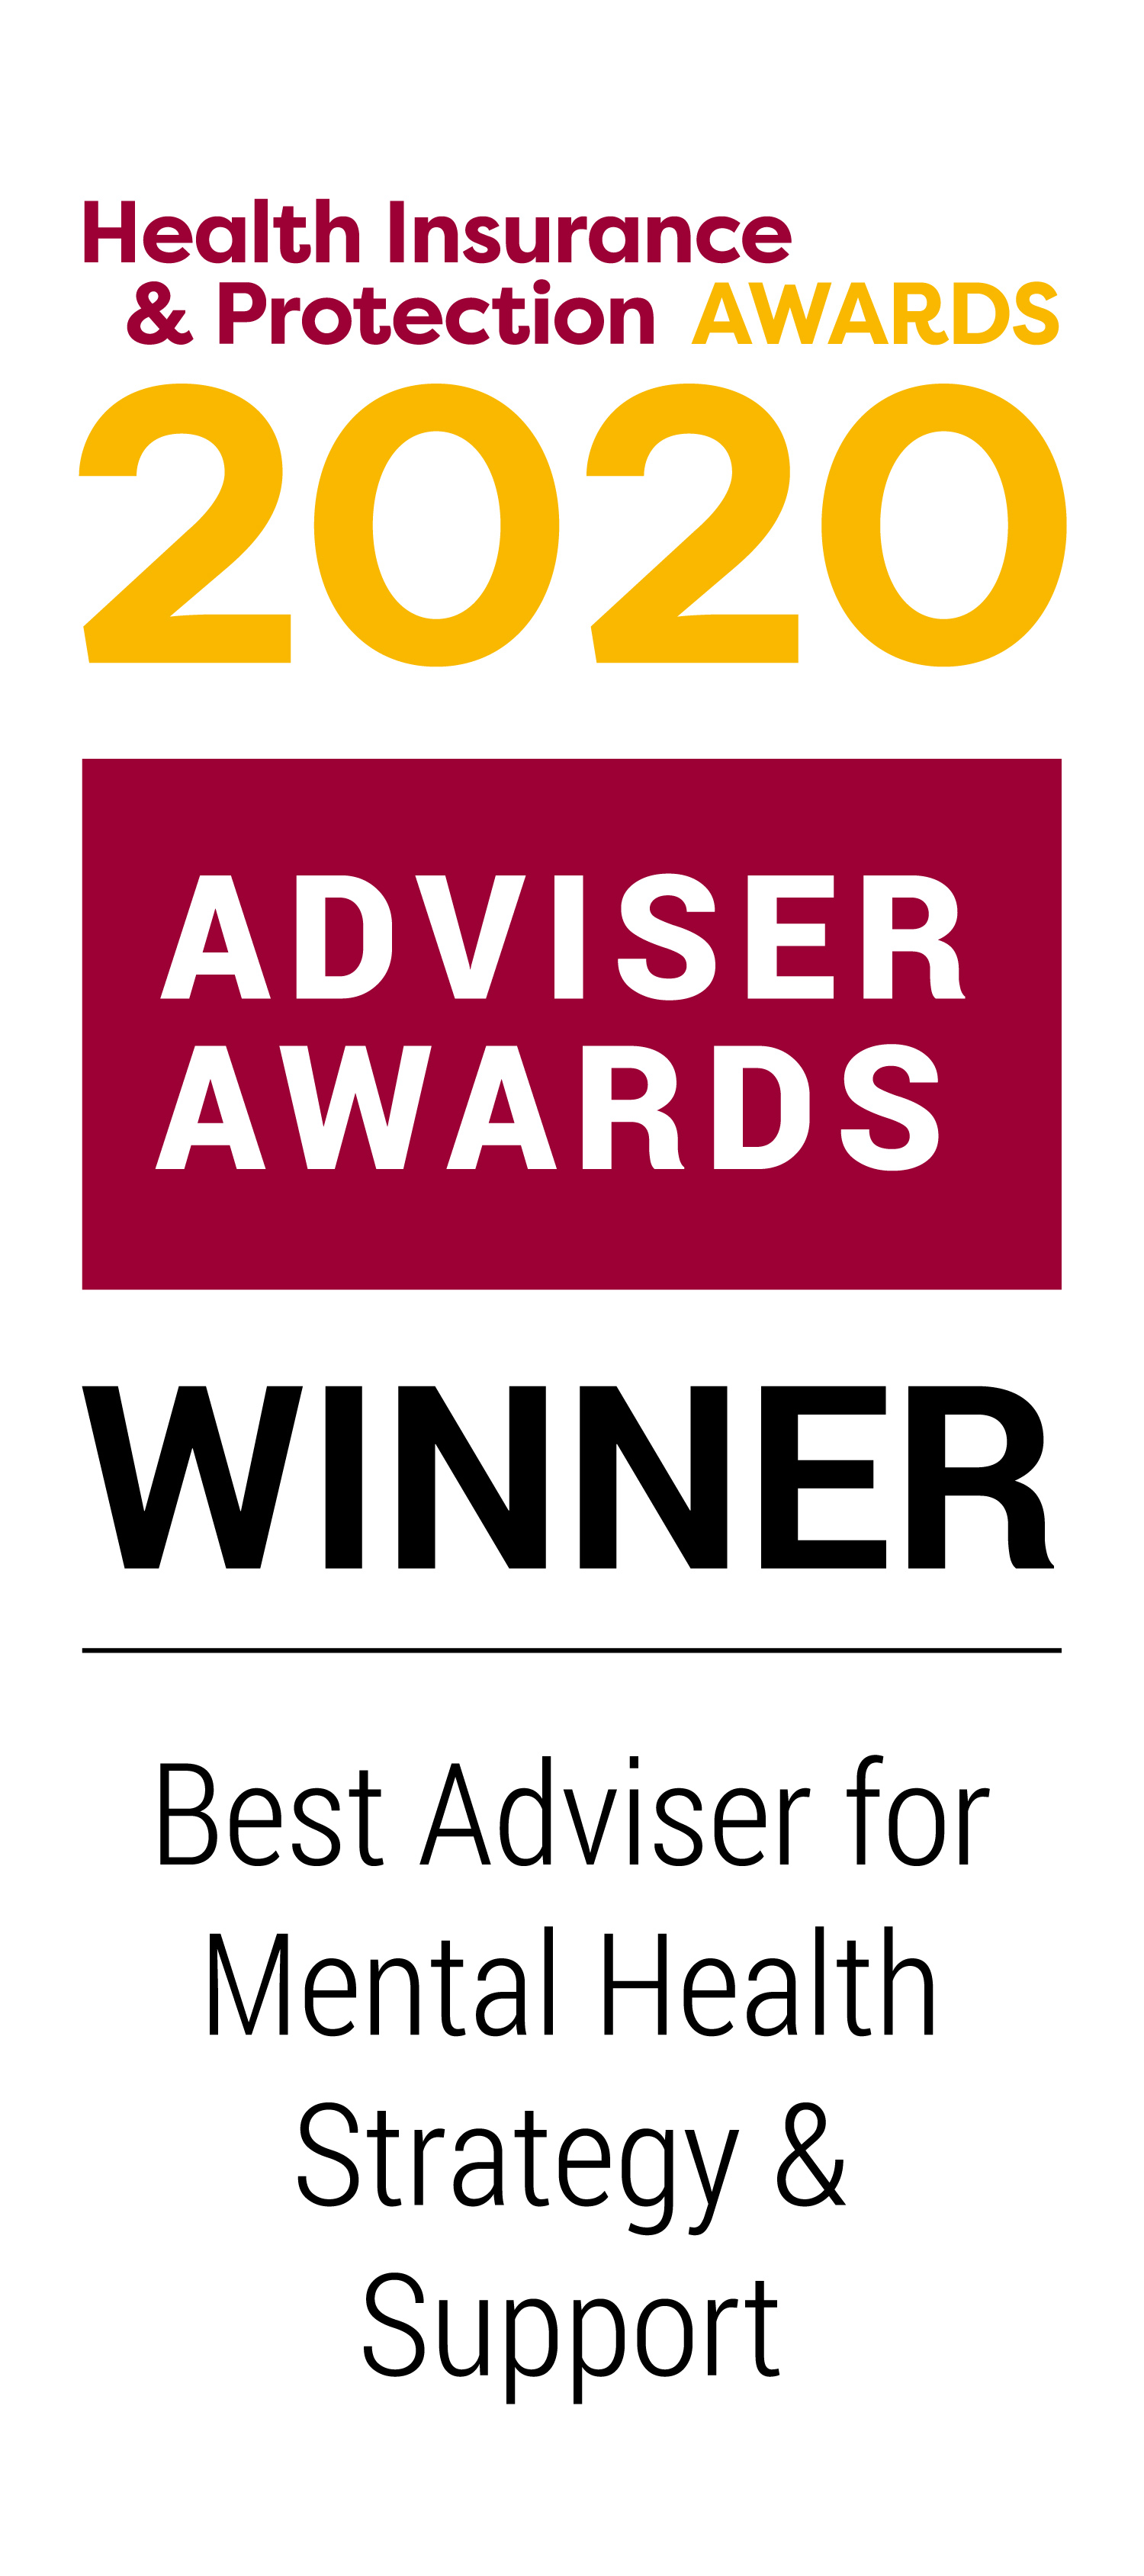 Best Adviser for Mental Health Strategy & Support 2020